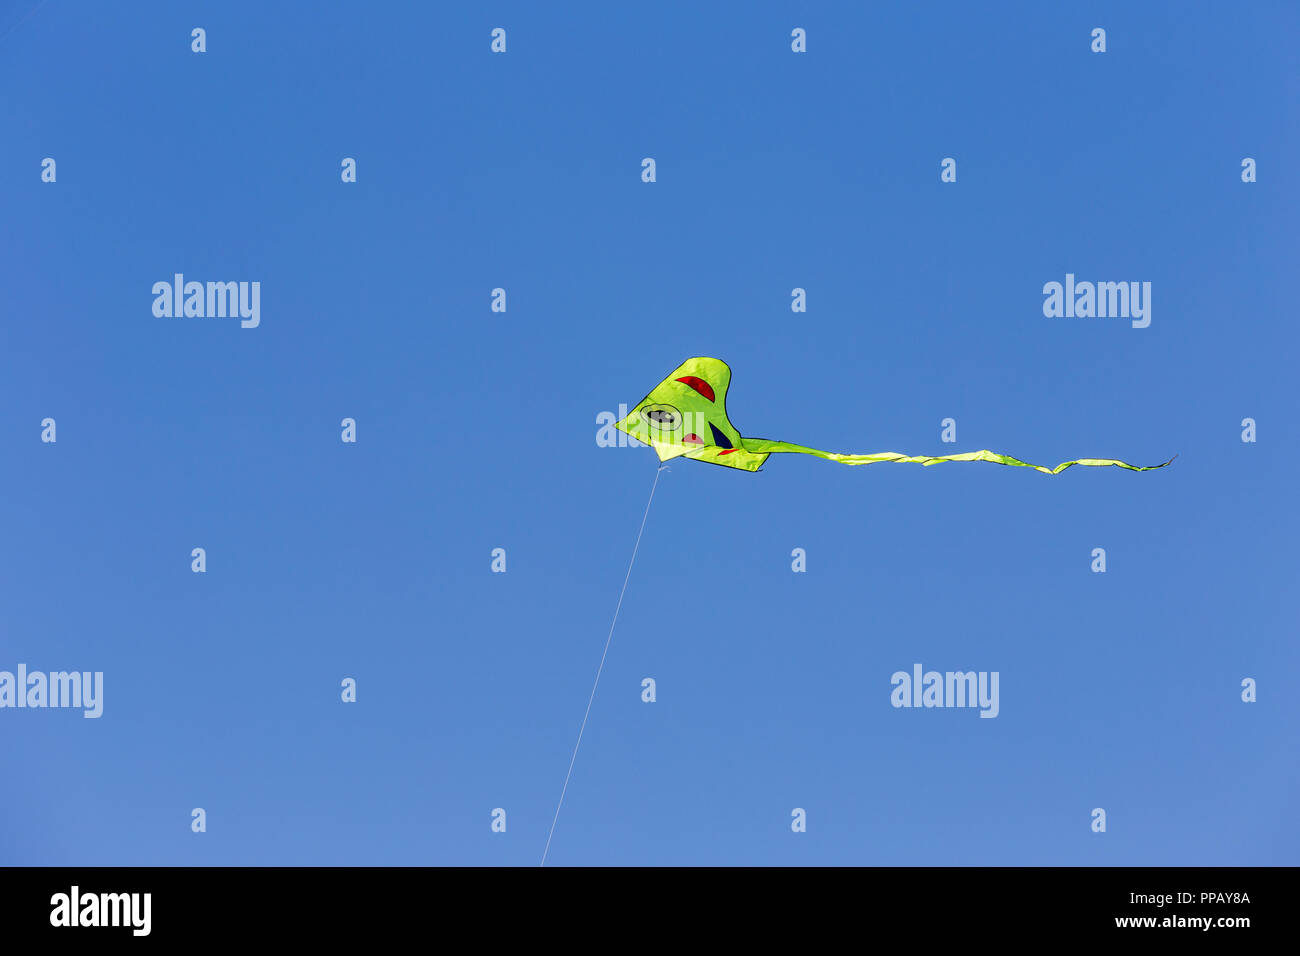 Yellow smiling face kite on the background of the summer open sky with copy space for text. Stock Photo